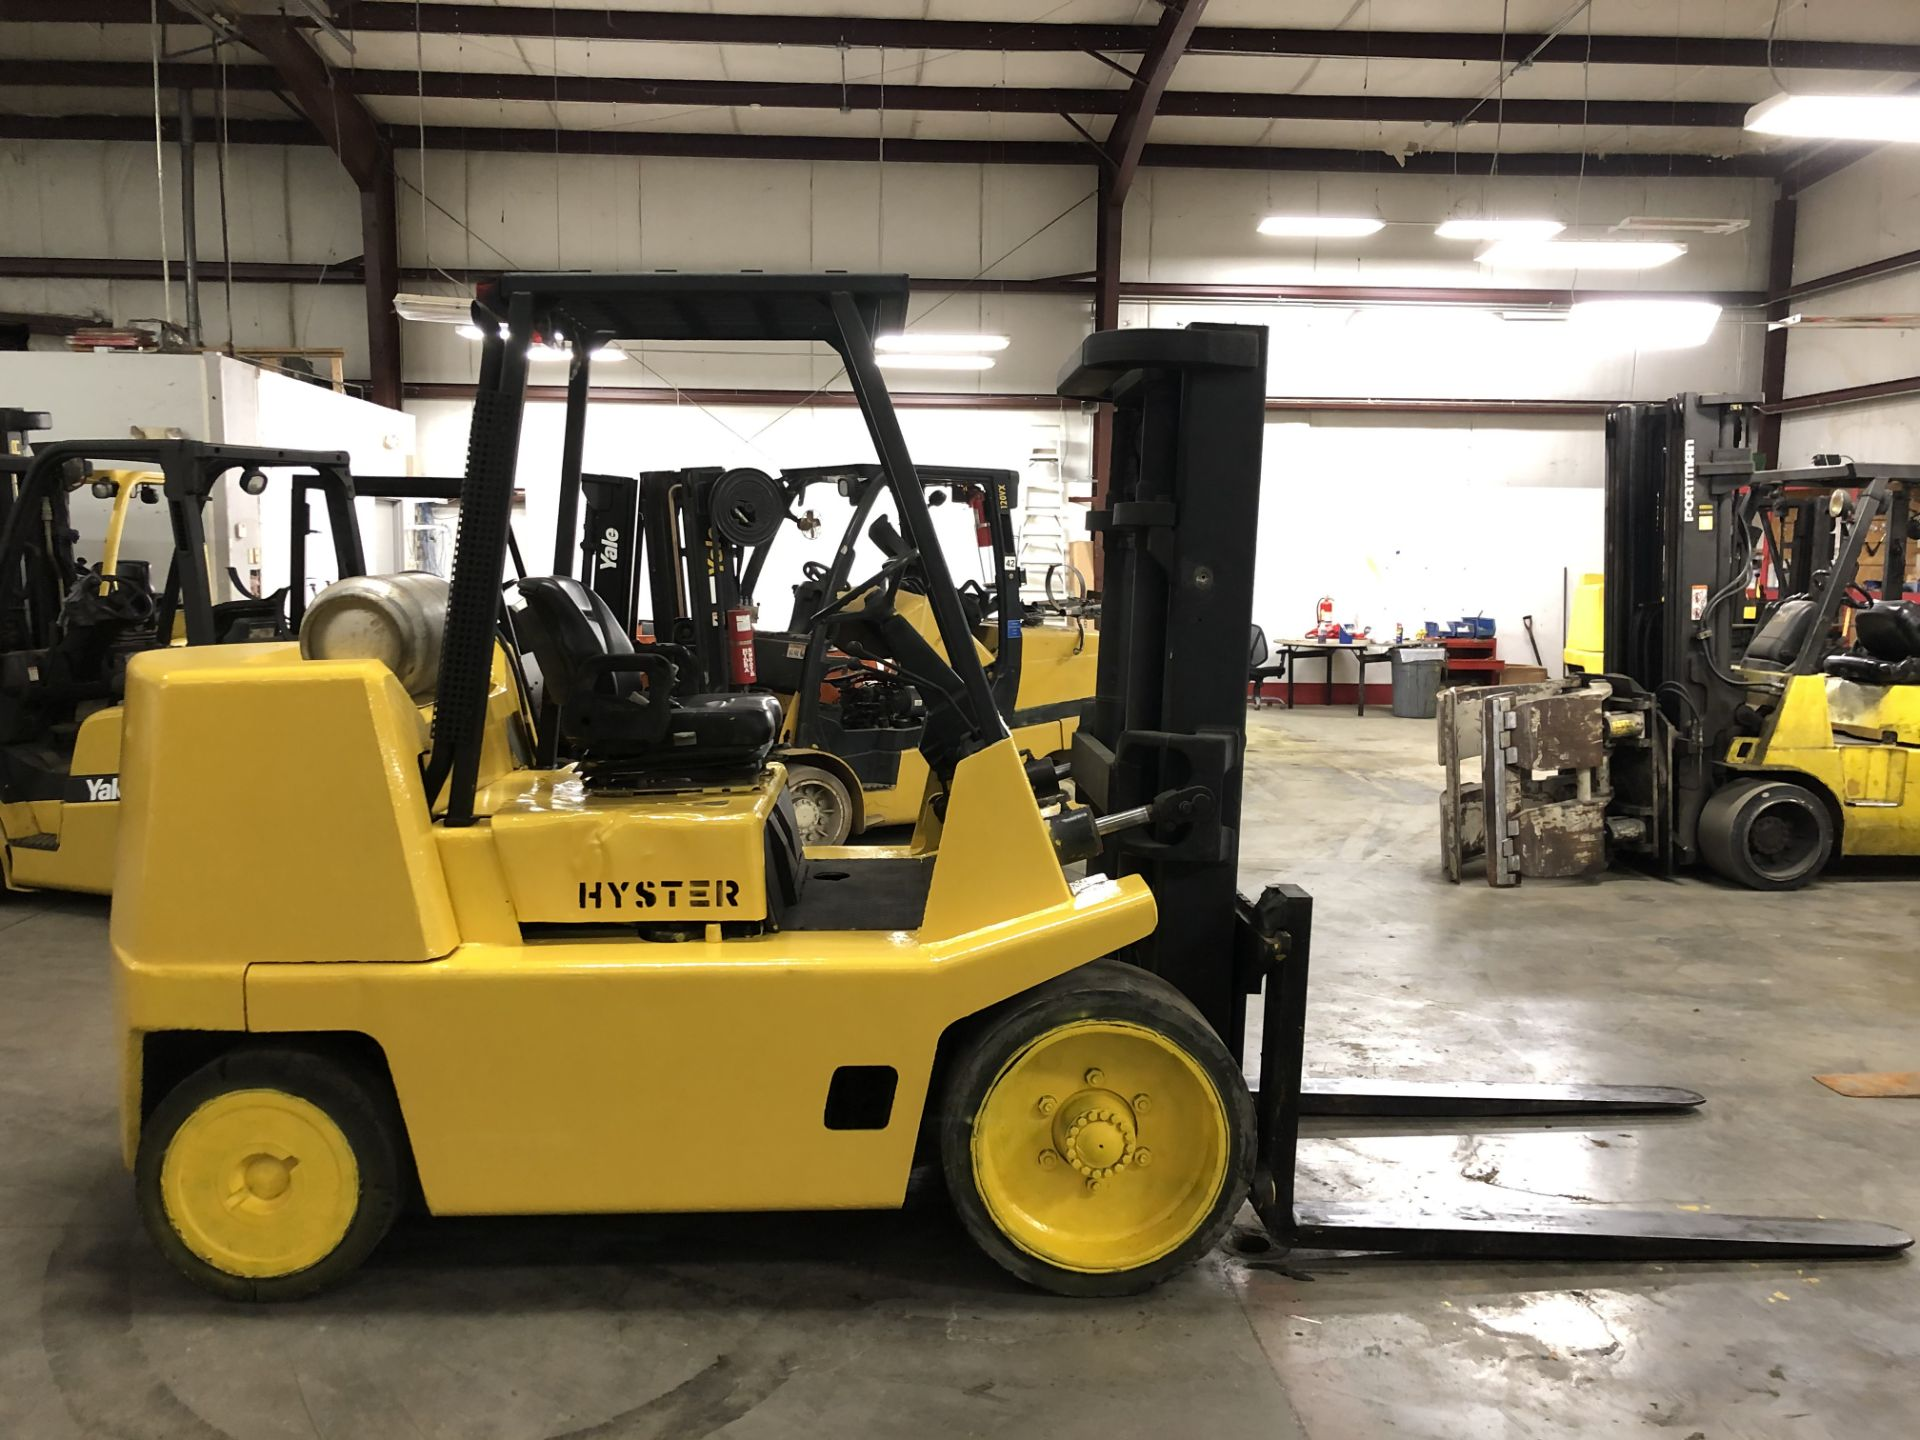 Lot 2 - 2003 HYSTER 15,500-LB. CAPACITY FORKLIFT, MODEL: S155XL, S/N: B024V02271A, LPG, SOLID TIRES, 2-SPEED